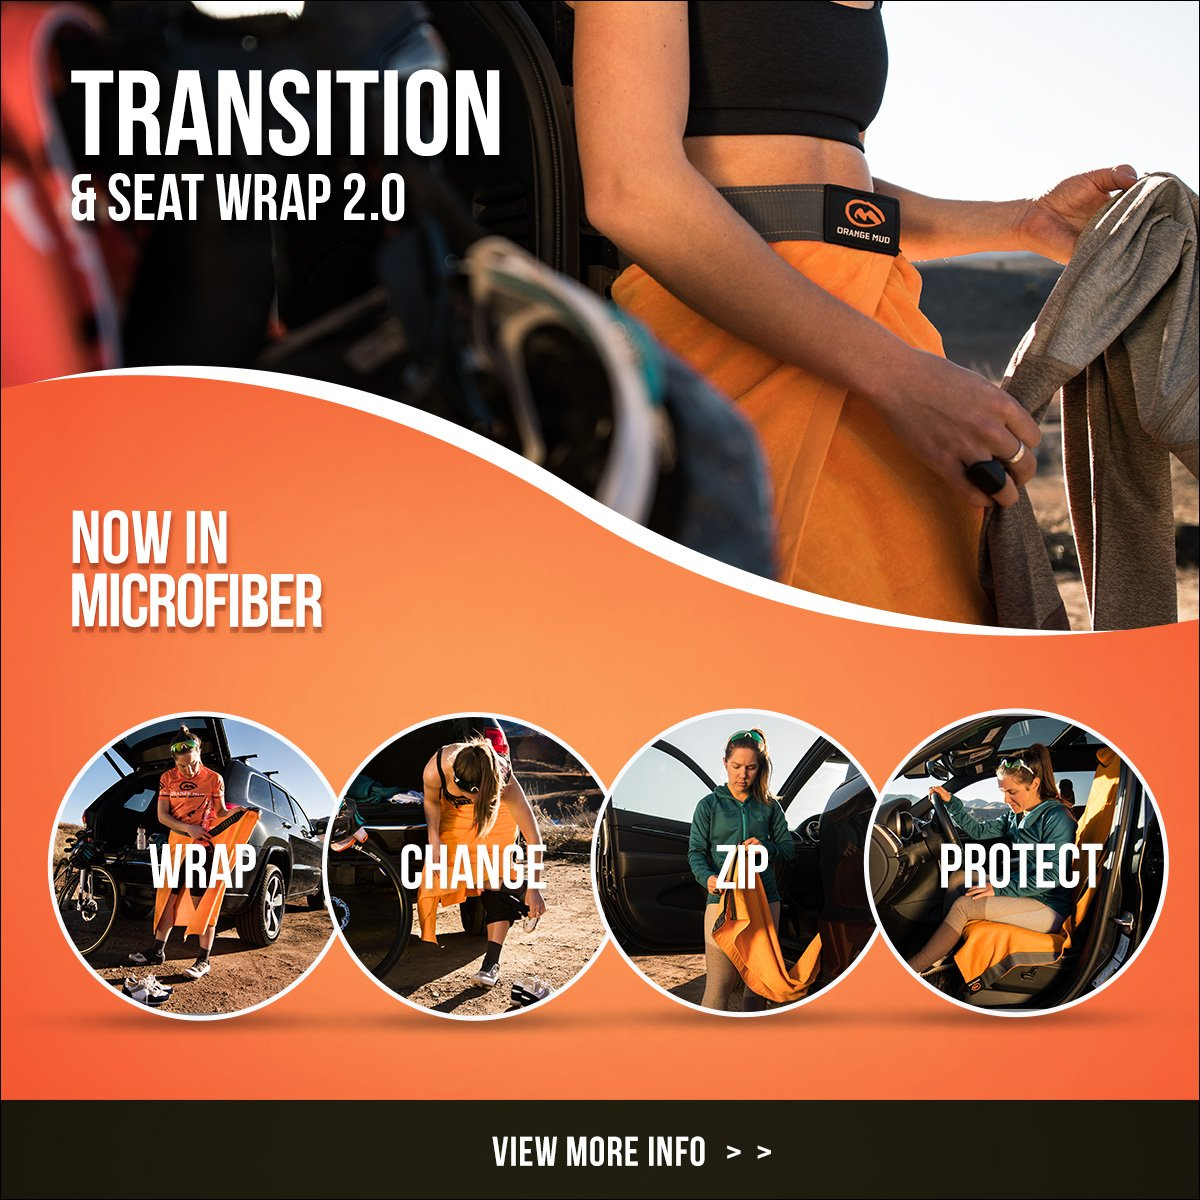 Transition Wrap 2.0